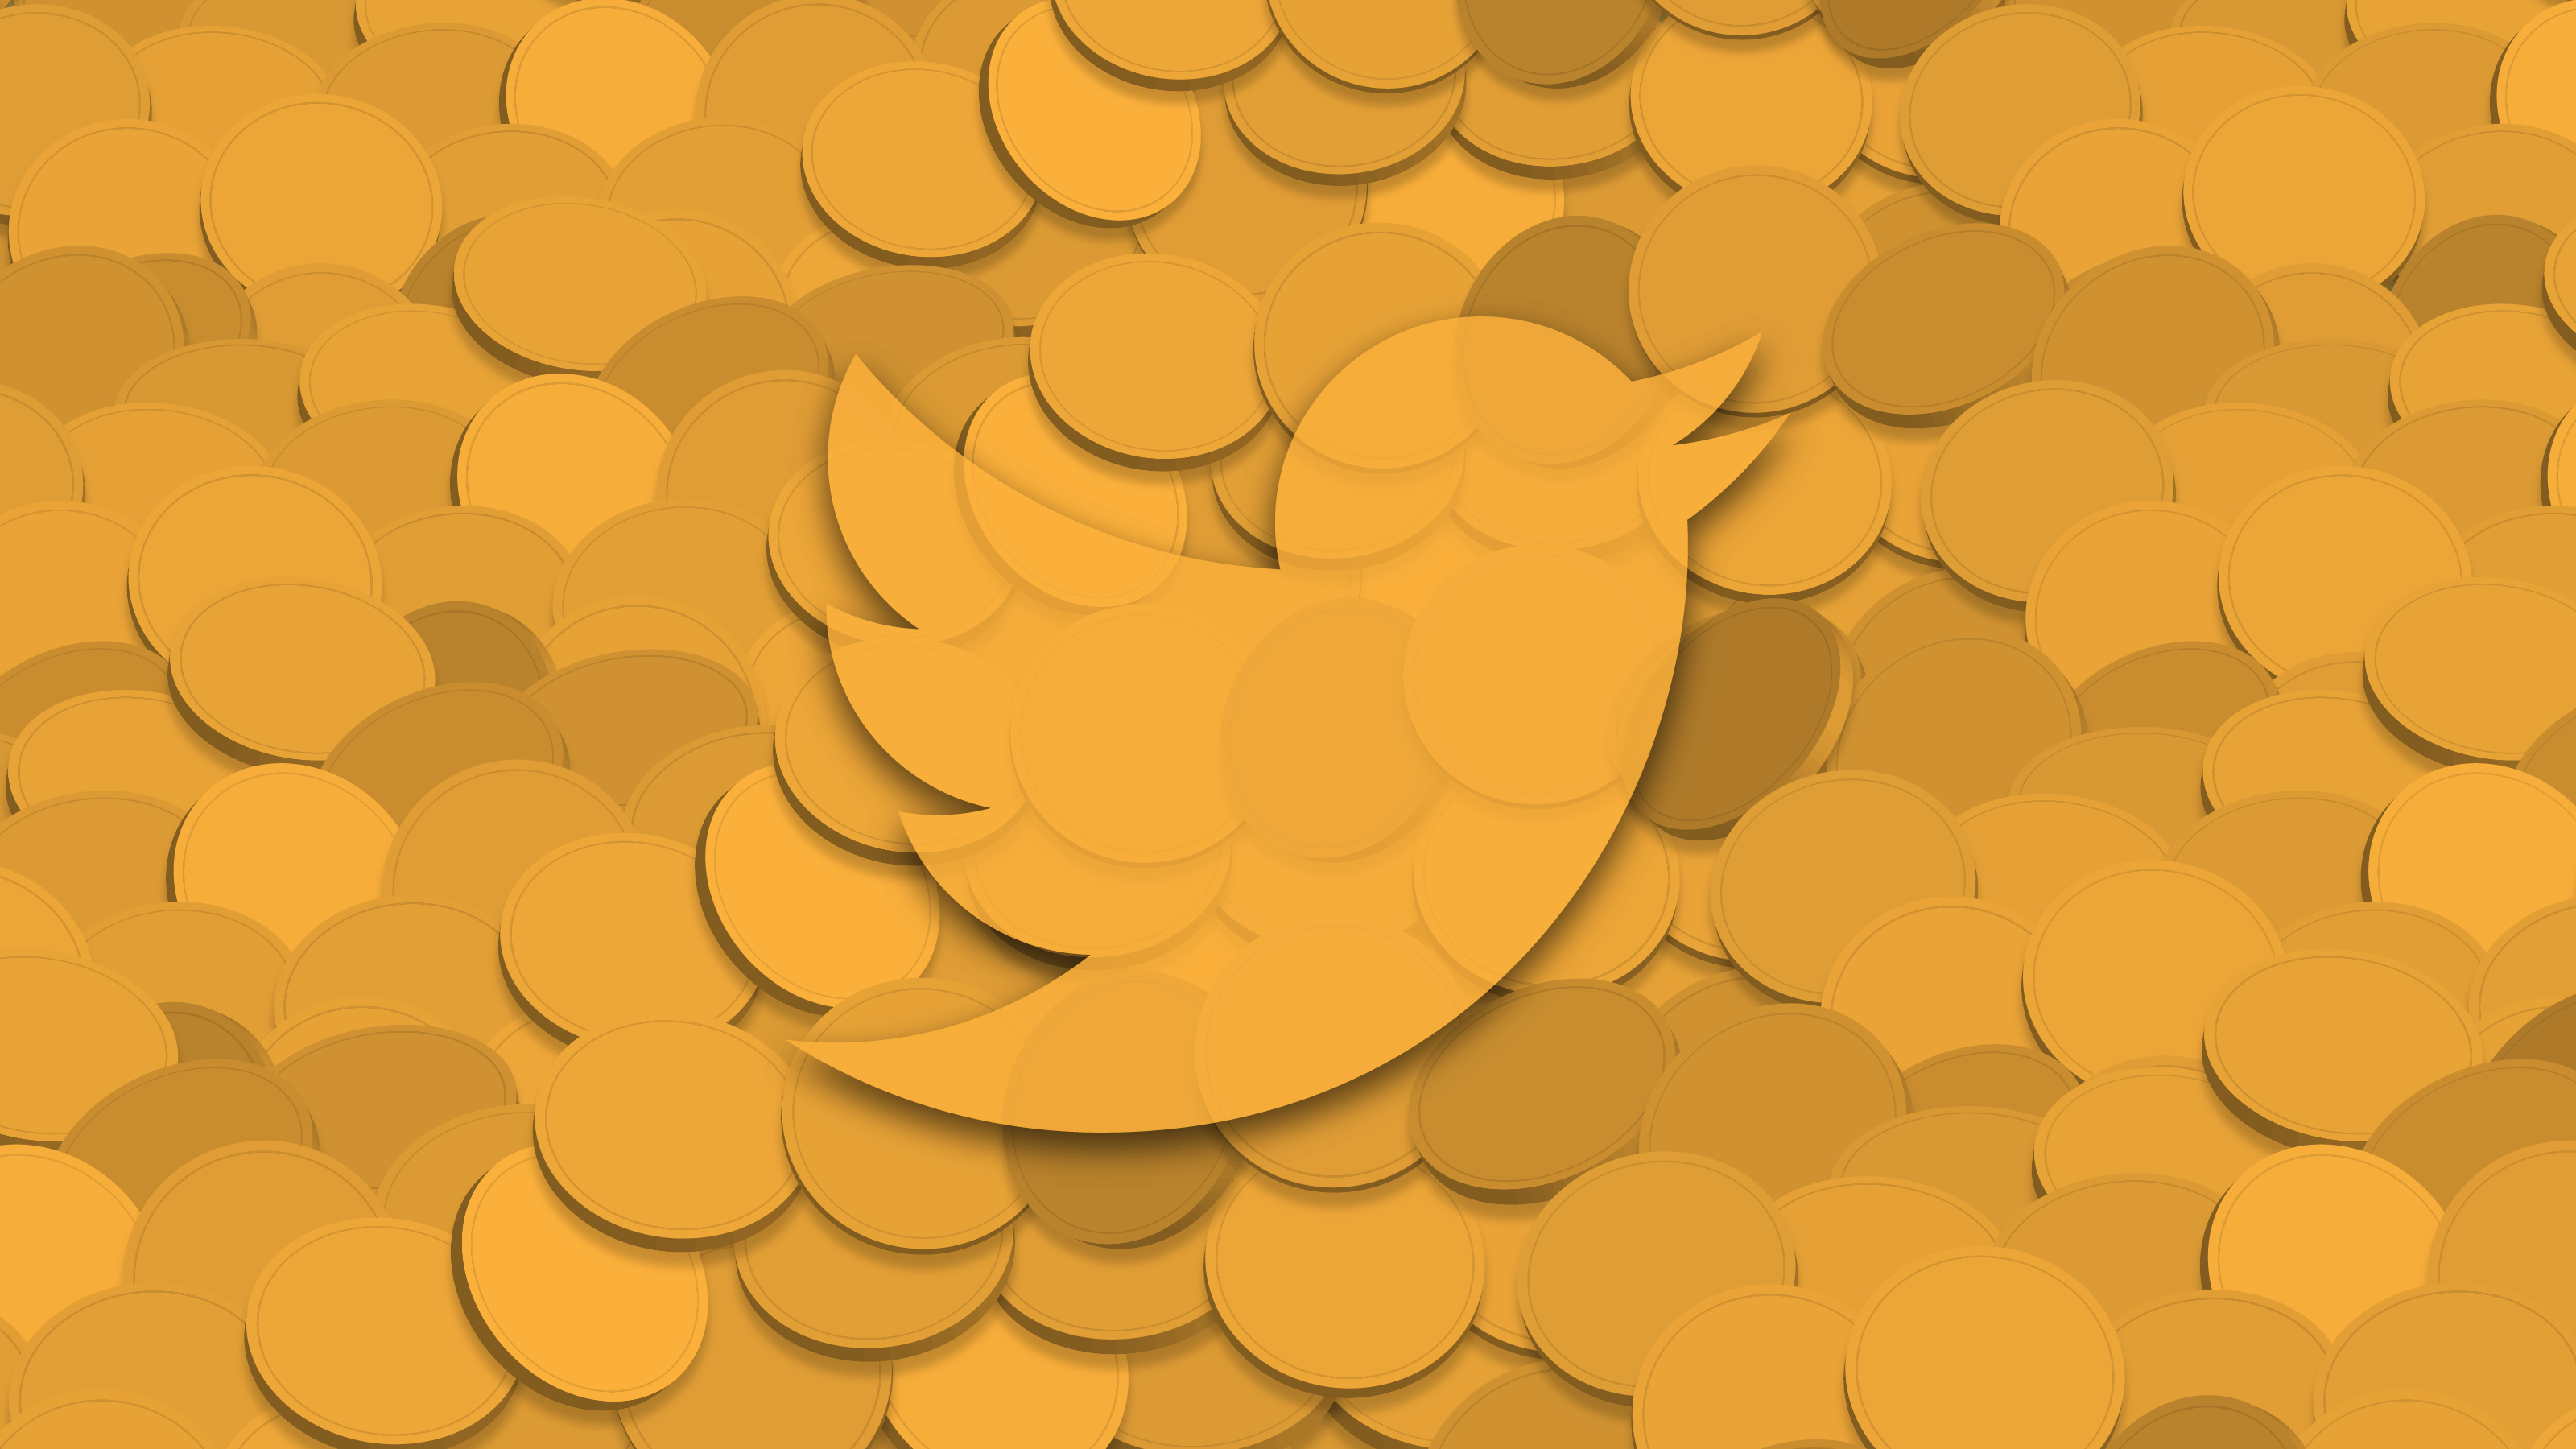 Twitter Will Ban ICO Ads Starting Tomorrow